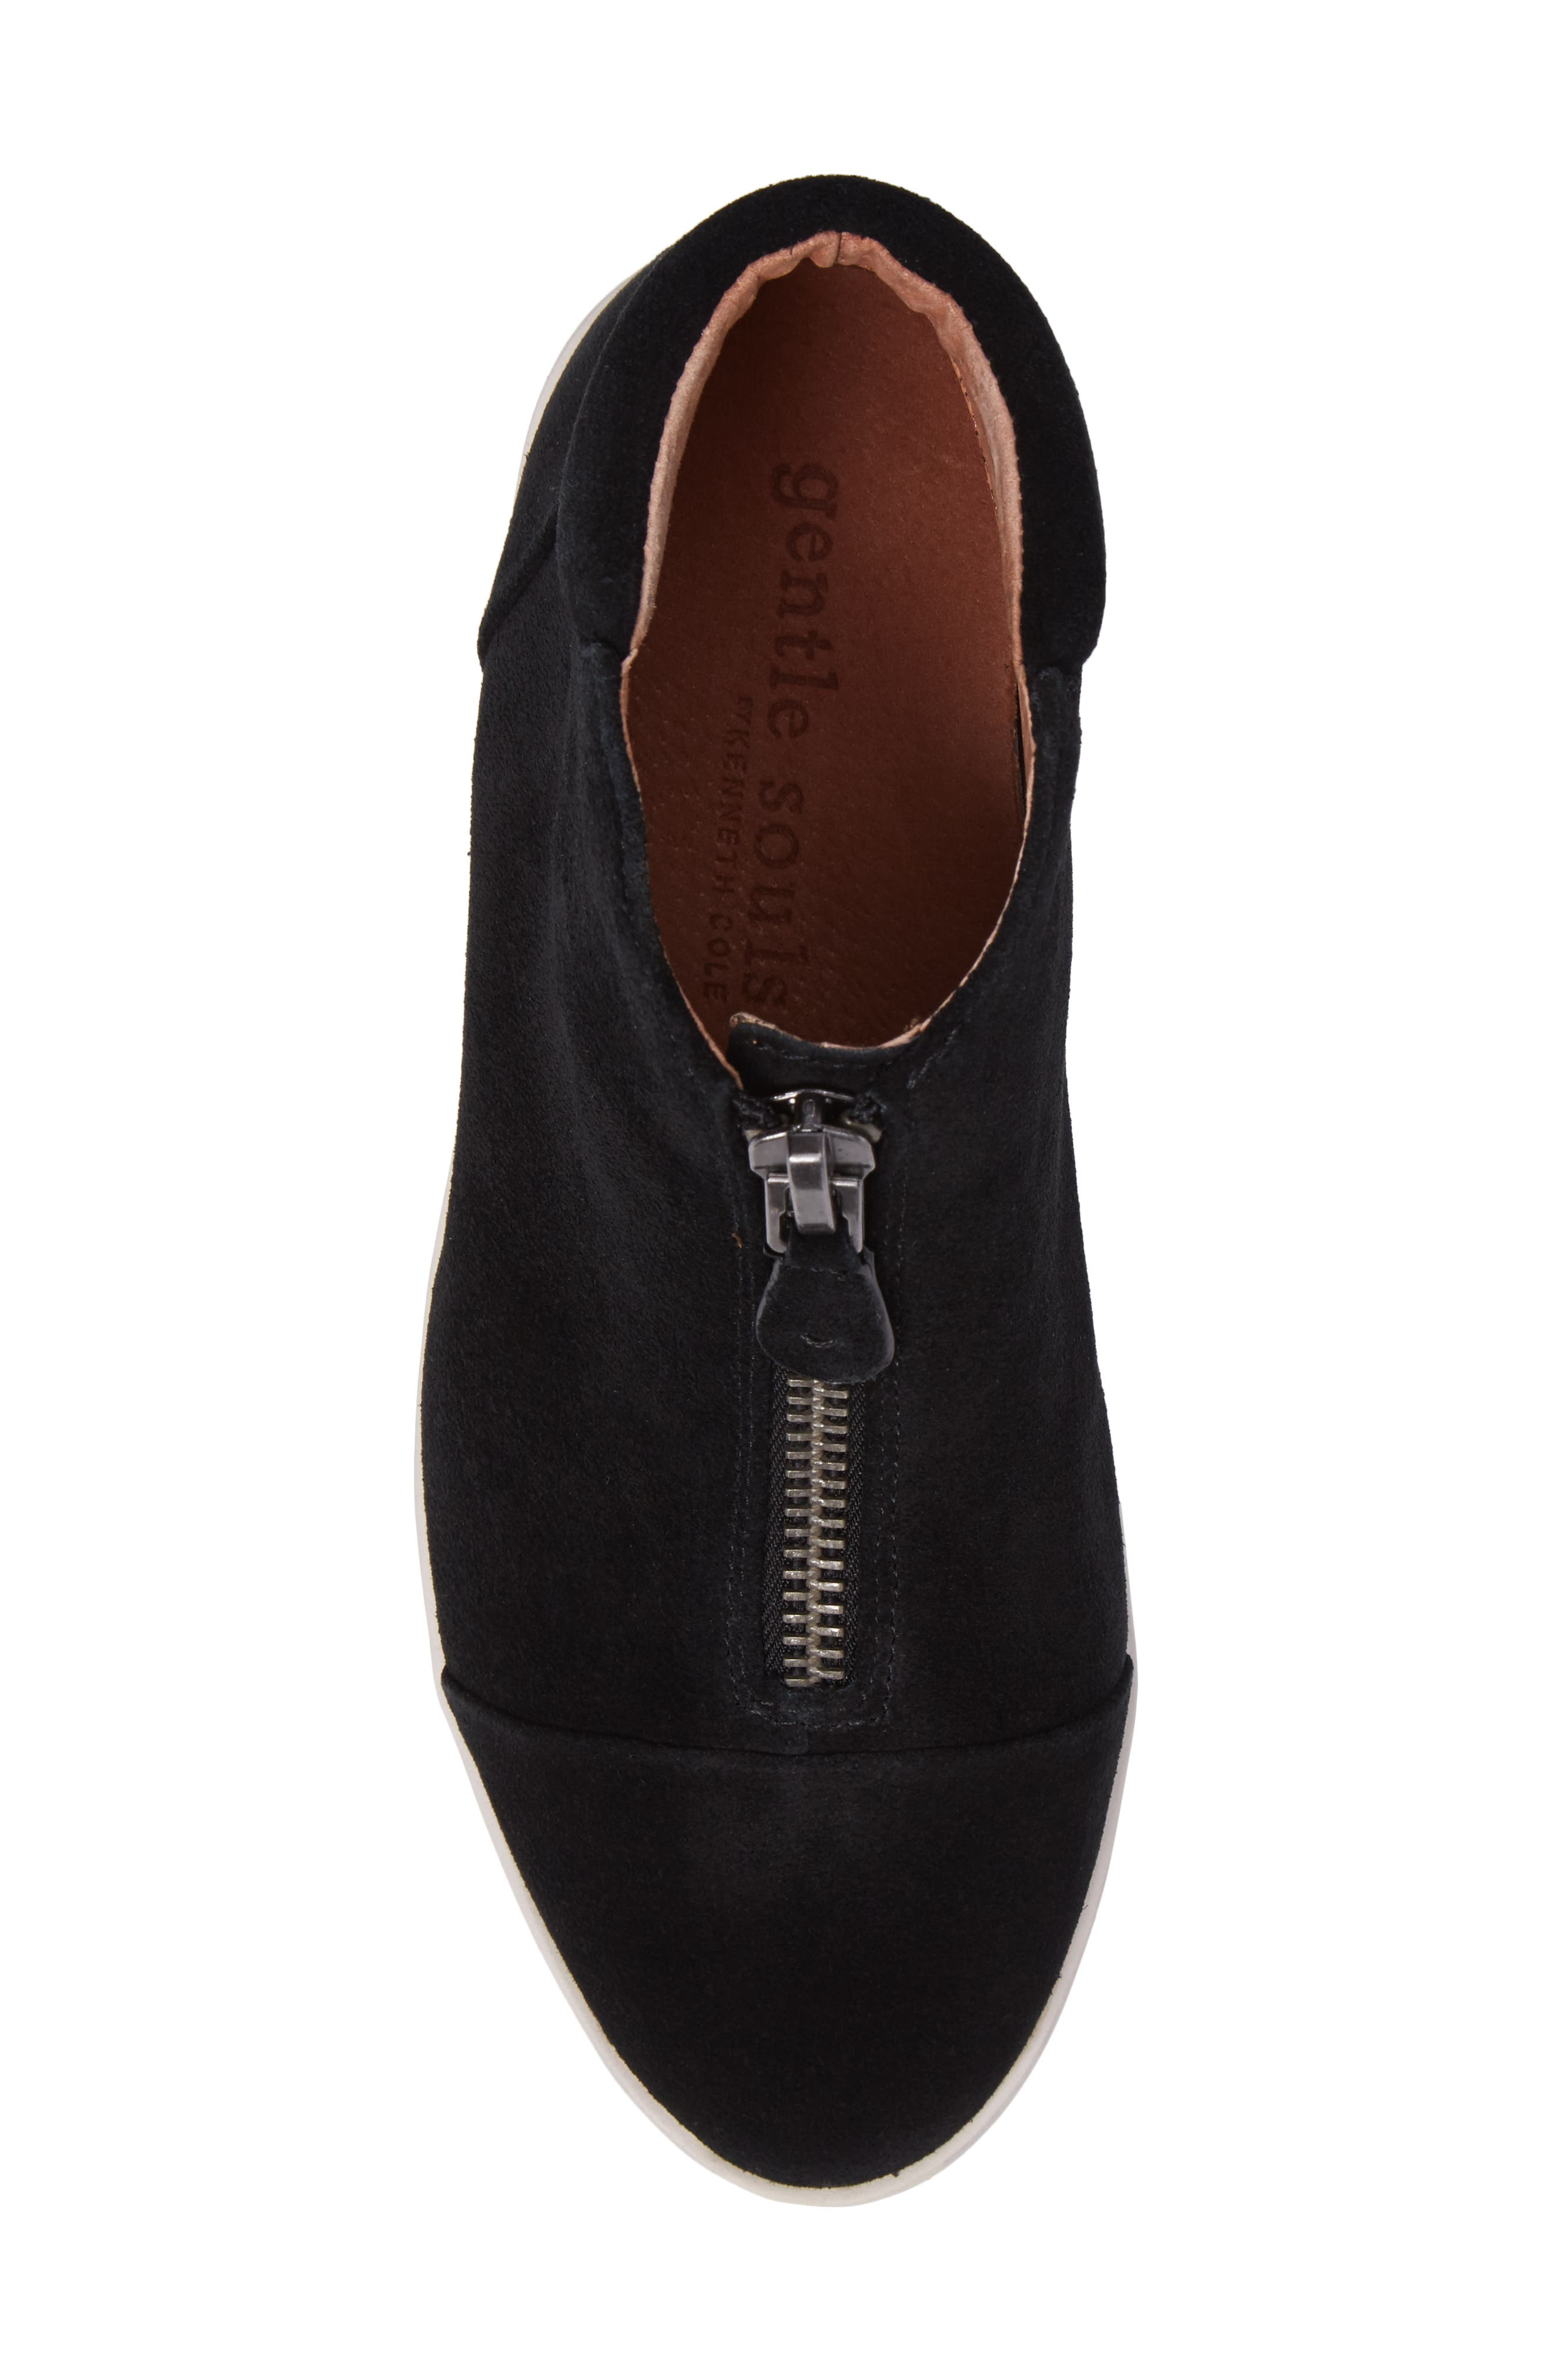 GENTLE SOULS BY KENNETH COLE, Hazel Fay High Top Sneaker, Alternate thumbnail 5, color, BLACK SUEDE